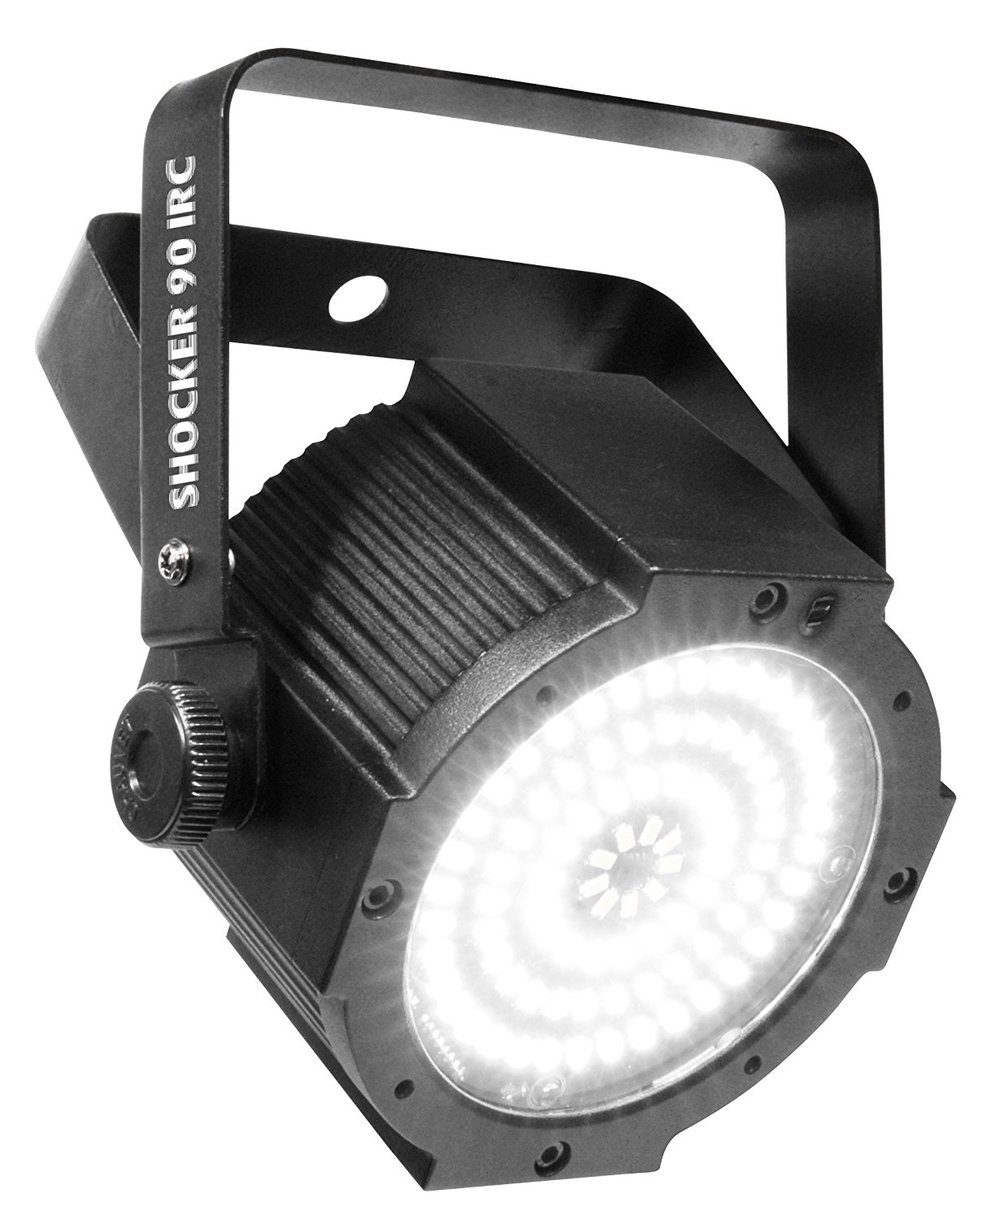 Chauvet Shocker 90   The Shocker 90 IRC is lightweight and little, and packs a brilliant, blinding white punch. It is a blinder that strobes and has 4 zones of control for a range of effects and patterns. Its eye-catching...